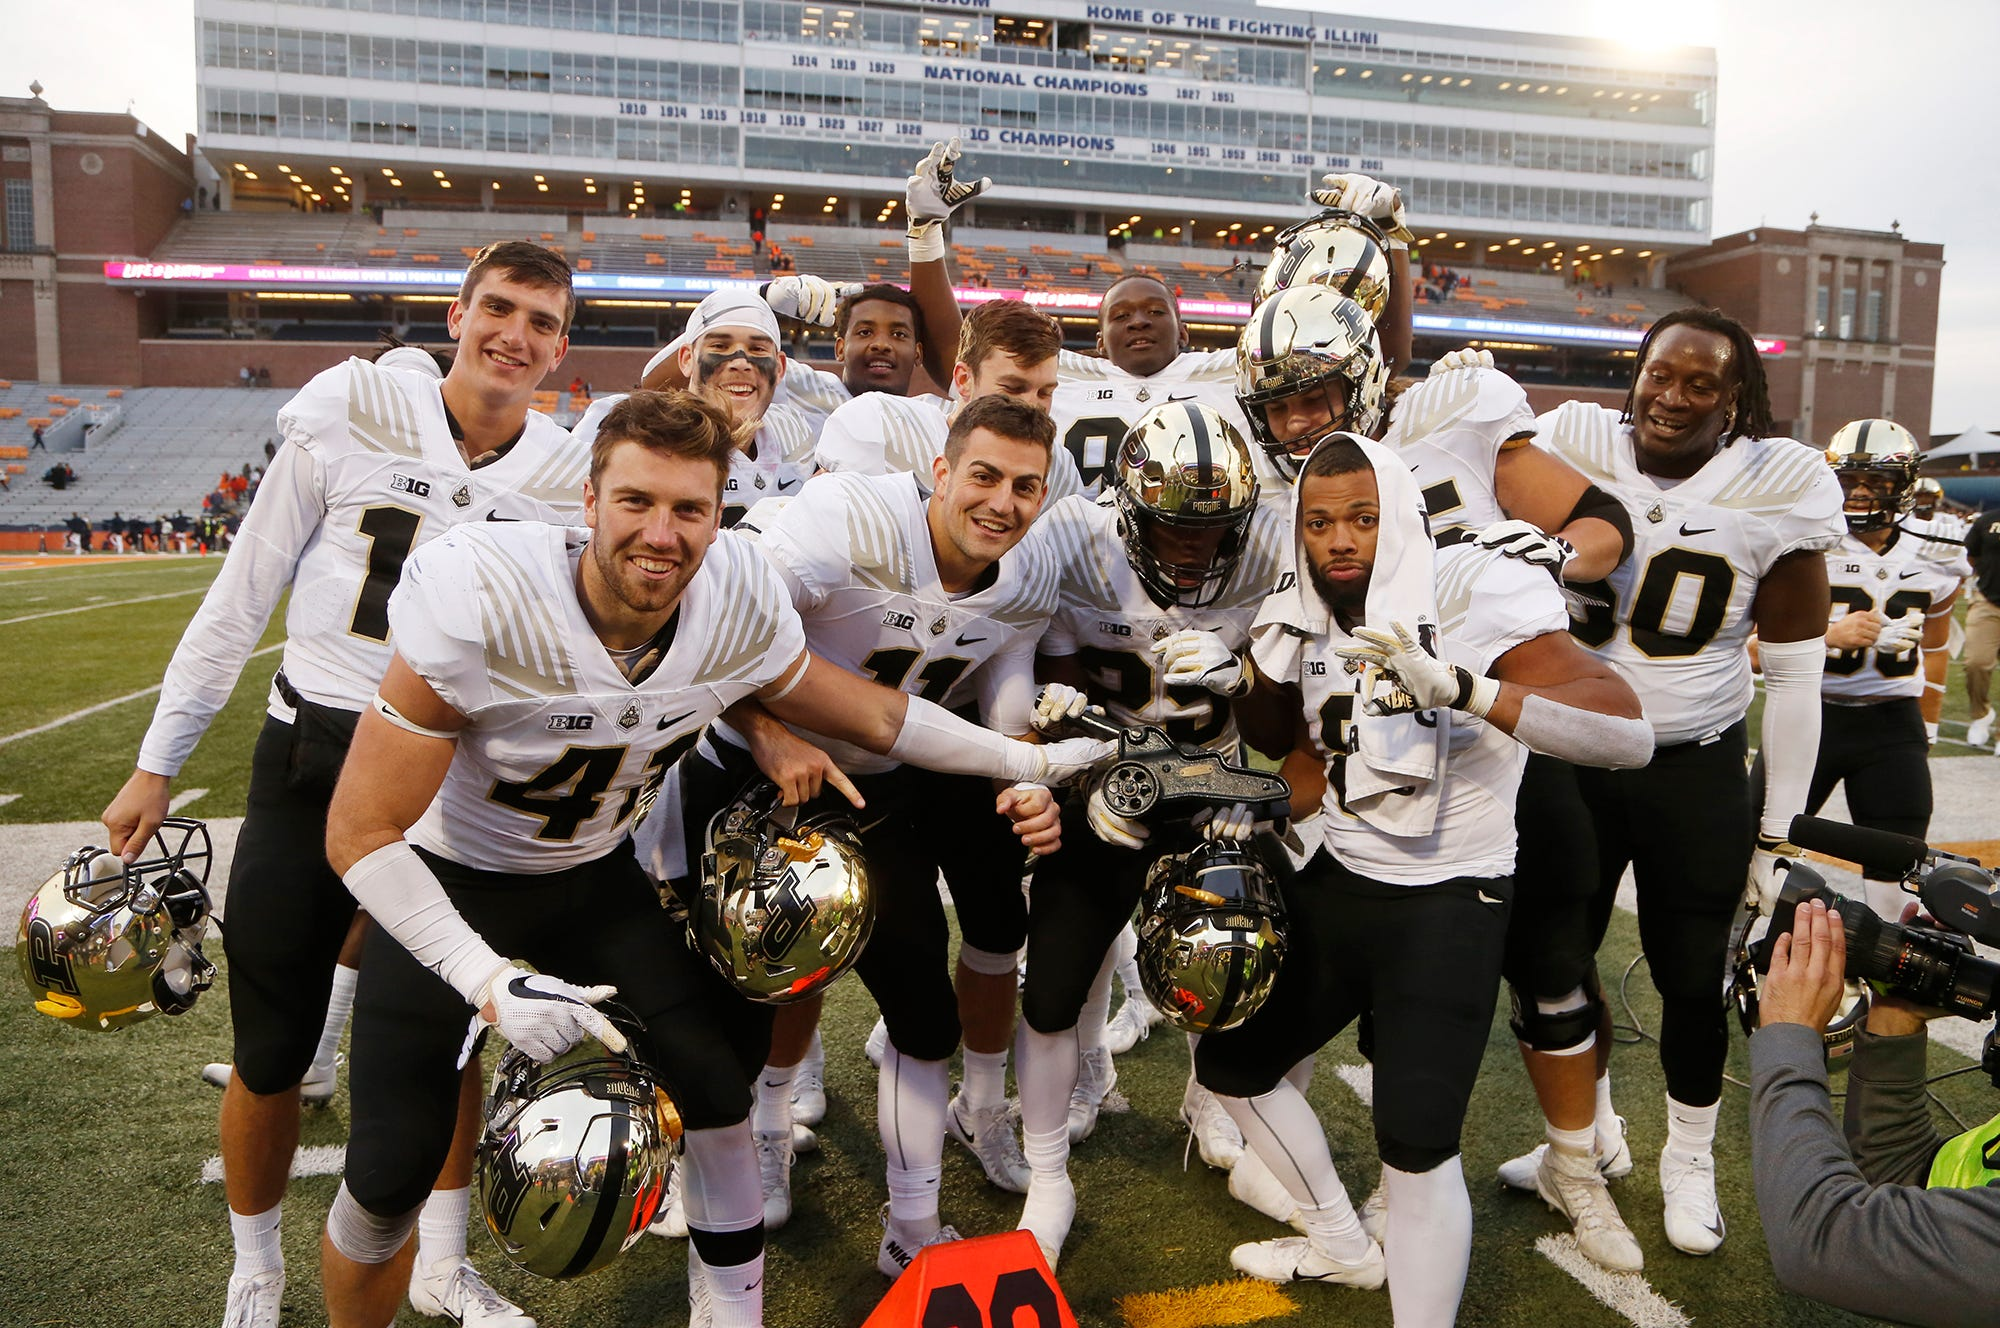 Purdue players quickly gather with The Cannon traveling trophy for photos defeating Illinois 46-7 Saturday, October 13, 2018, in Champaign, Illinois.